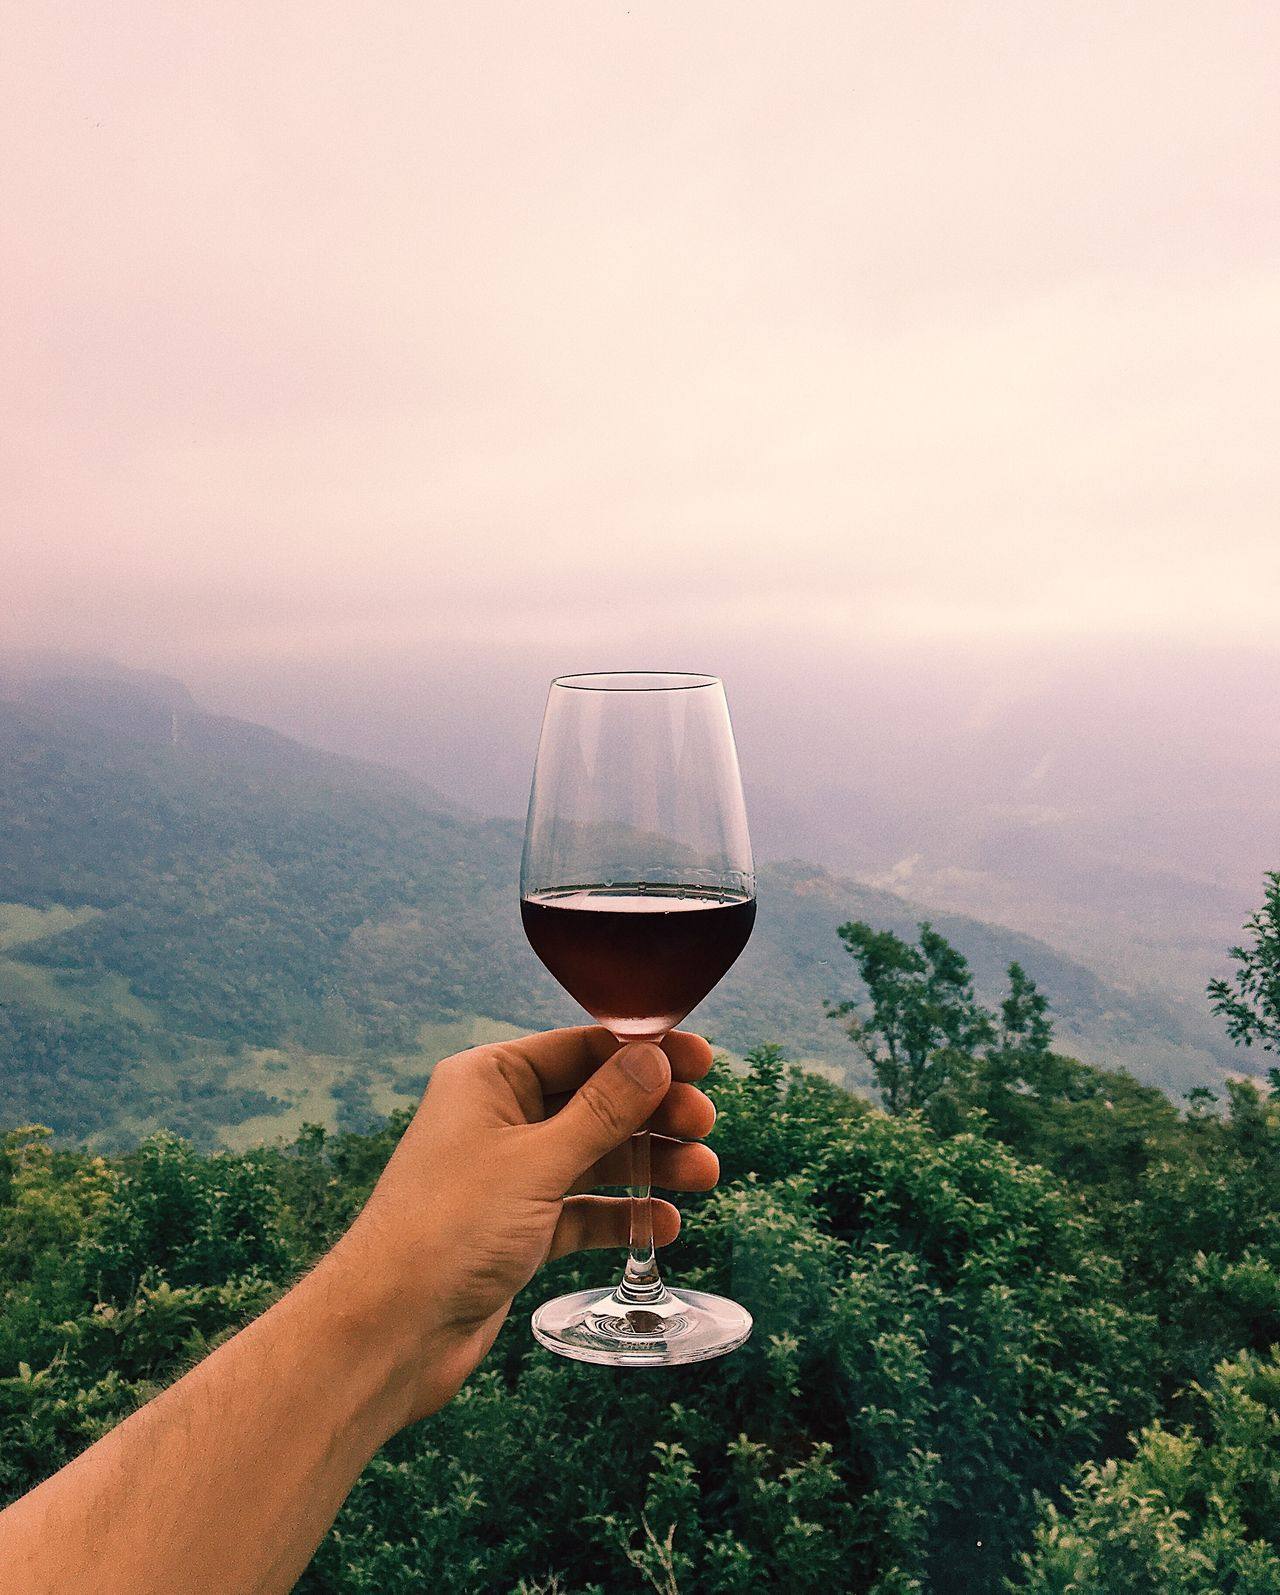 Wine Not Wineglass Wine Human Hand Alcohol Red Wine Holding Drink Human Body Part Food And Drink Drinking Glass One Person Refreshment Real People Drinking Mountain Tree Sky Nature Landscape Men EyeEm Selects